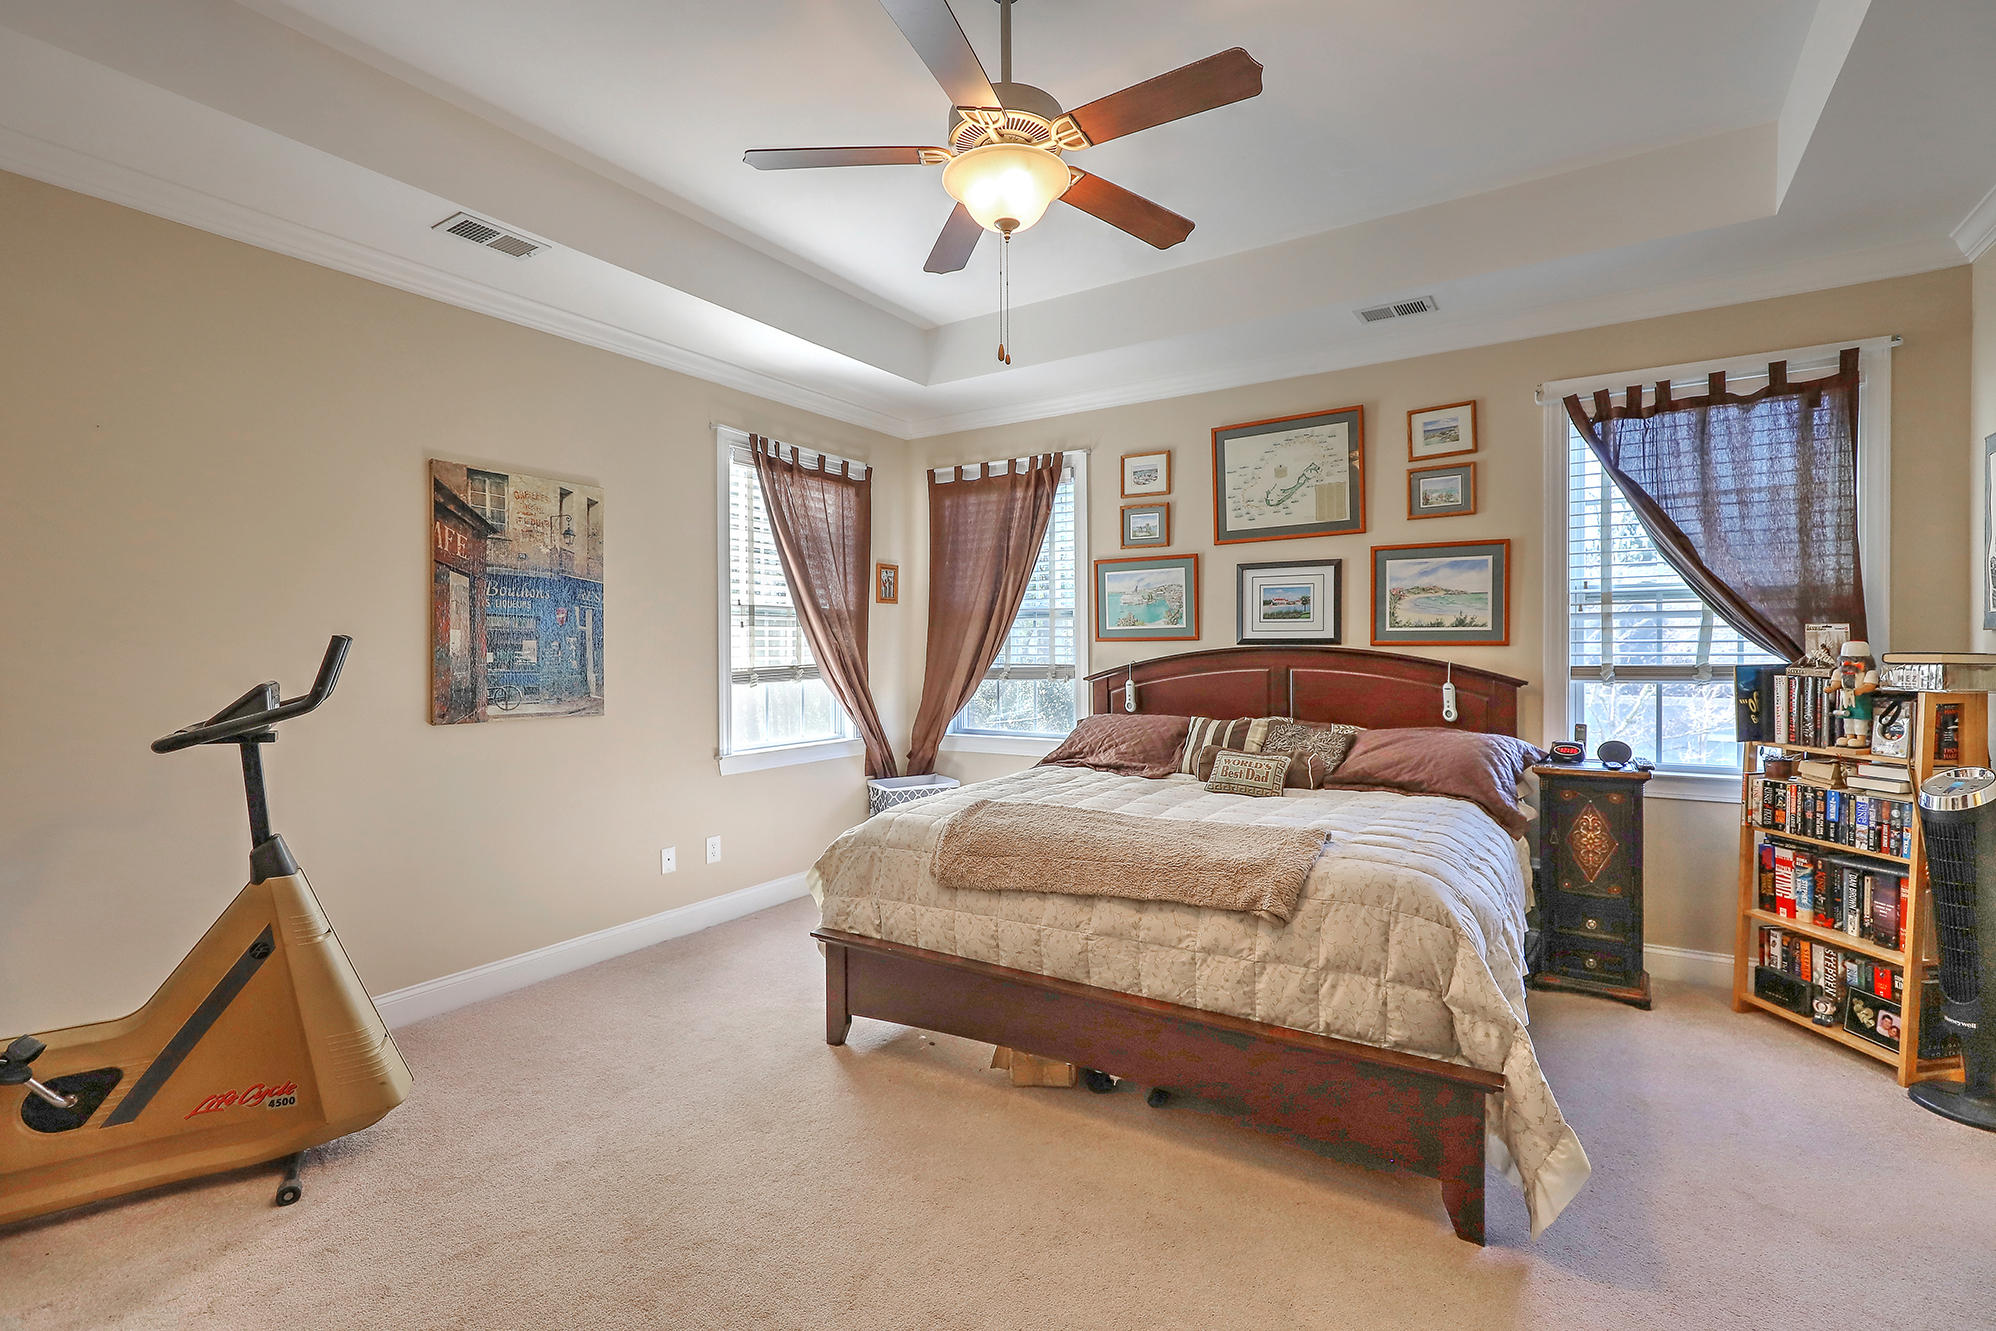 Rivertowne On The Wando Homes For Sale - 2105 Sandy Point, Mount Pleasant, SC - 71